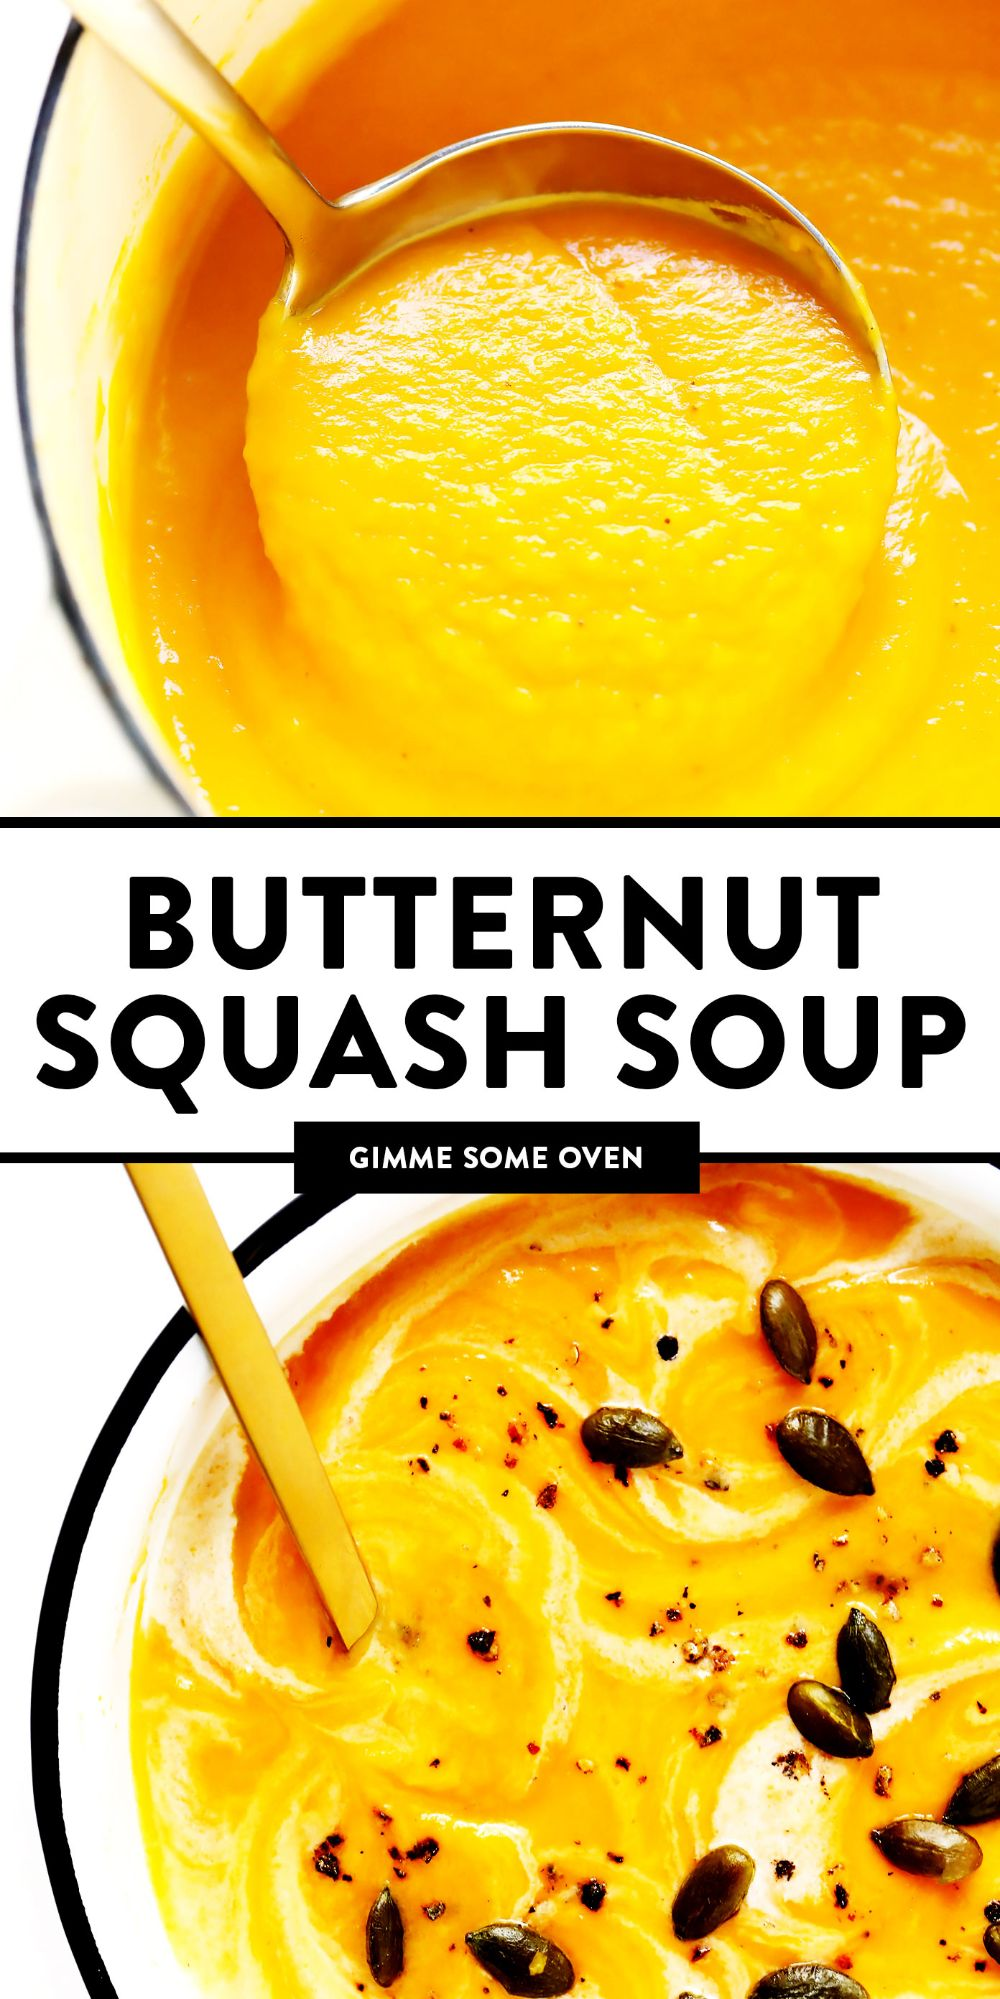 The BEST Butternut Squash Soup recipe! It's a super cozy and delicious dinner recipe, and made with healthy, seasonal ingredients you can feel great about. Easy to make in the Instant Pot (pressure cooker), Crockpot, or on the stovetop. | Gimme Some Oven #butternut #soup #glutenfree #vegan #vegetarian #healthy #fall #winter #thanksgiving